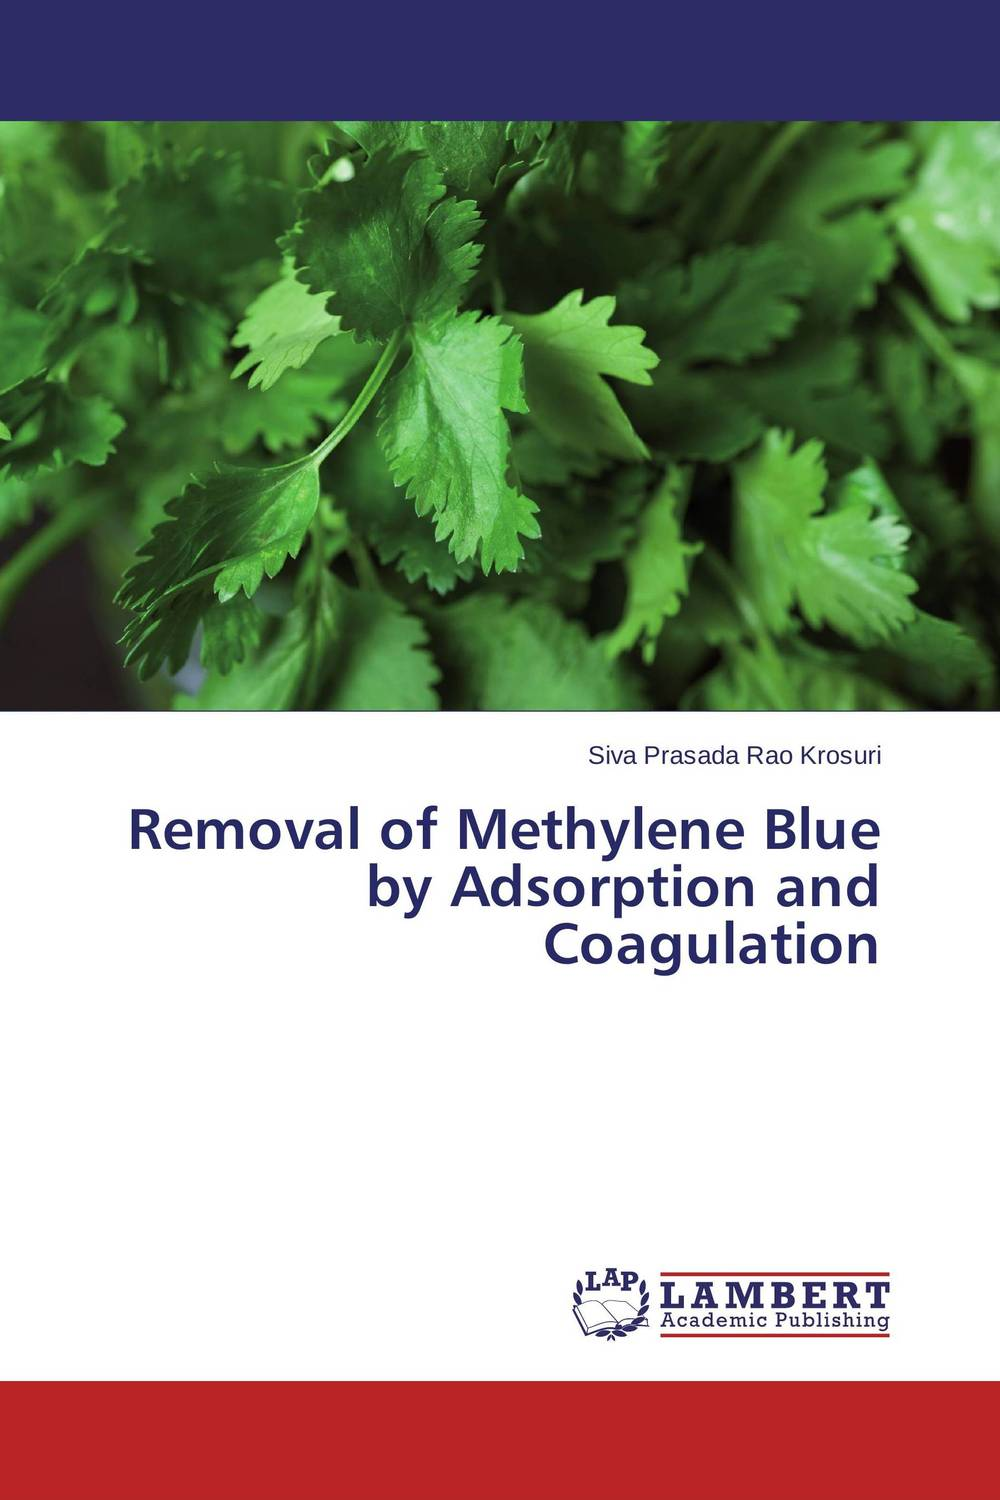 Removal of Methylene Blue by Adsorption and Coagulation